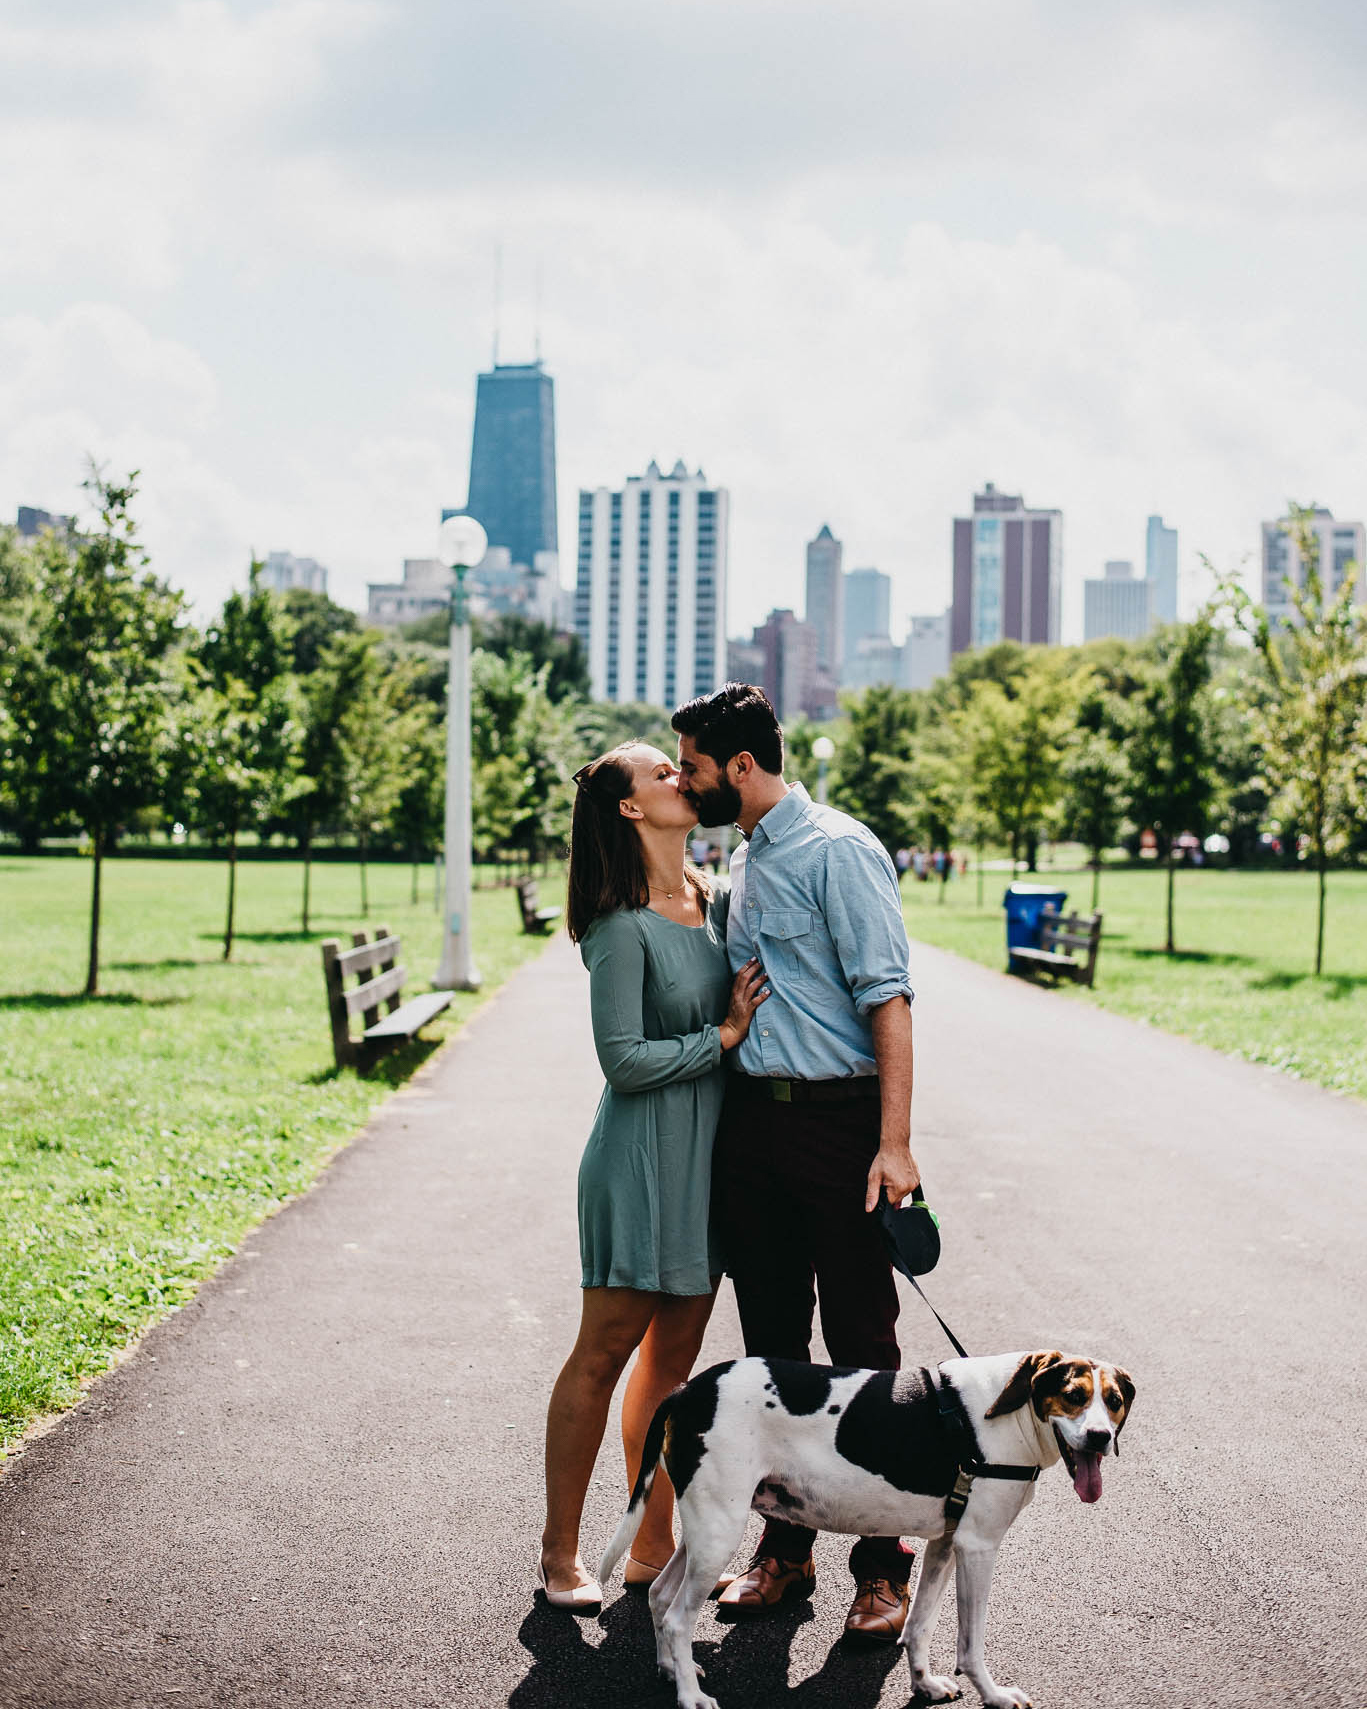 An engaged couple kissing in a Chicago park